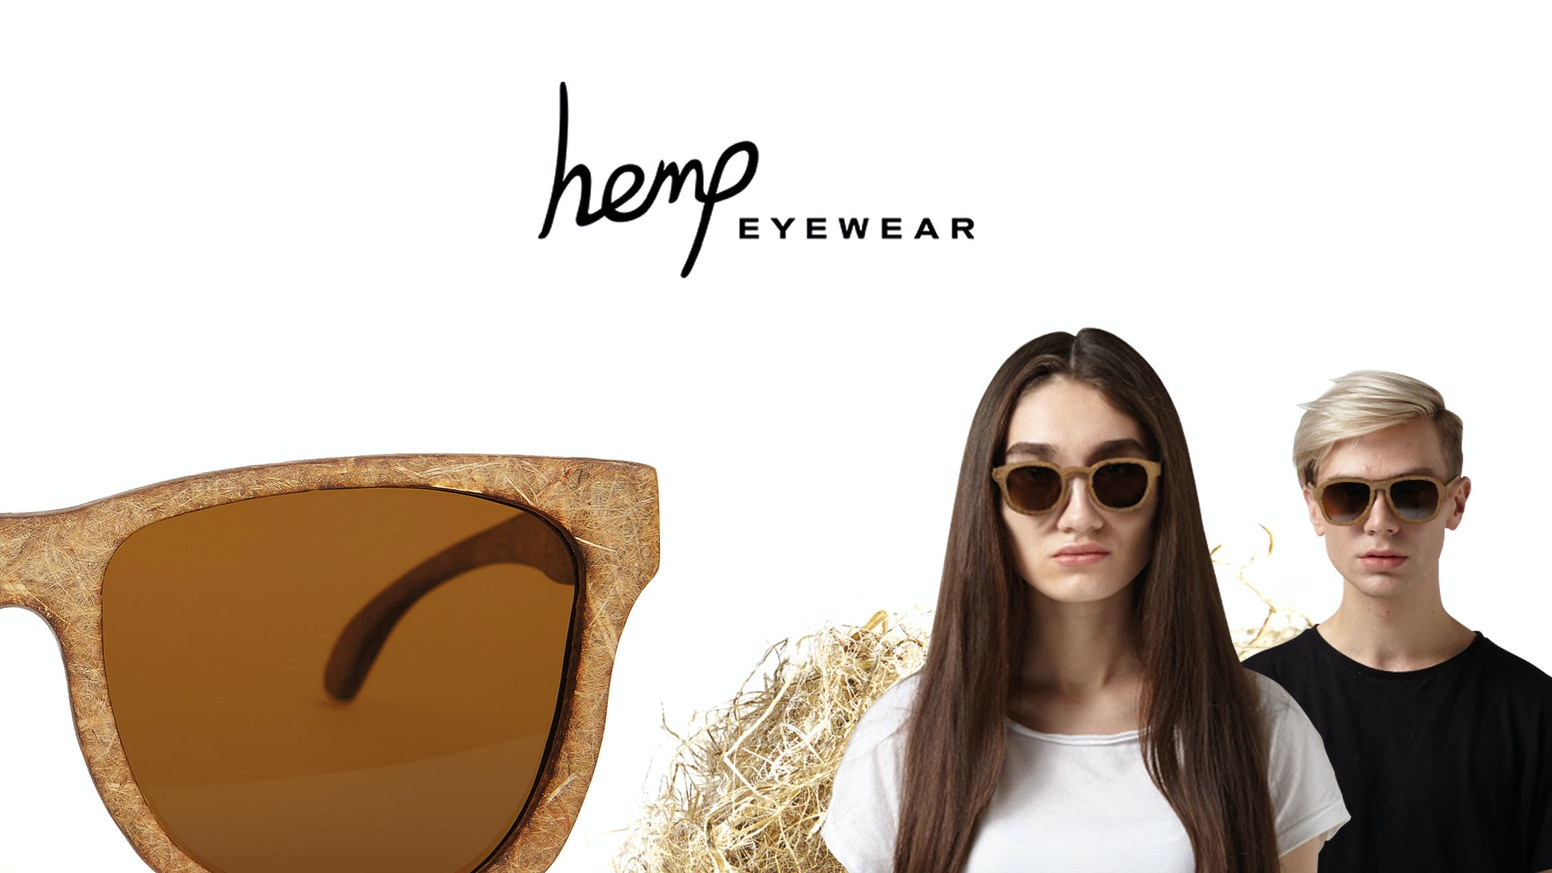 Hemp Eyewear - a premium collection of organic plant fibre glasses. Innovative, high quality and designed for a sustainable future.